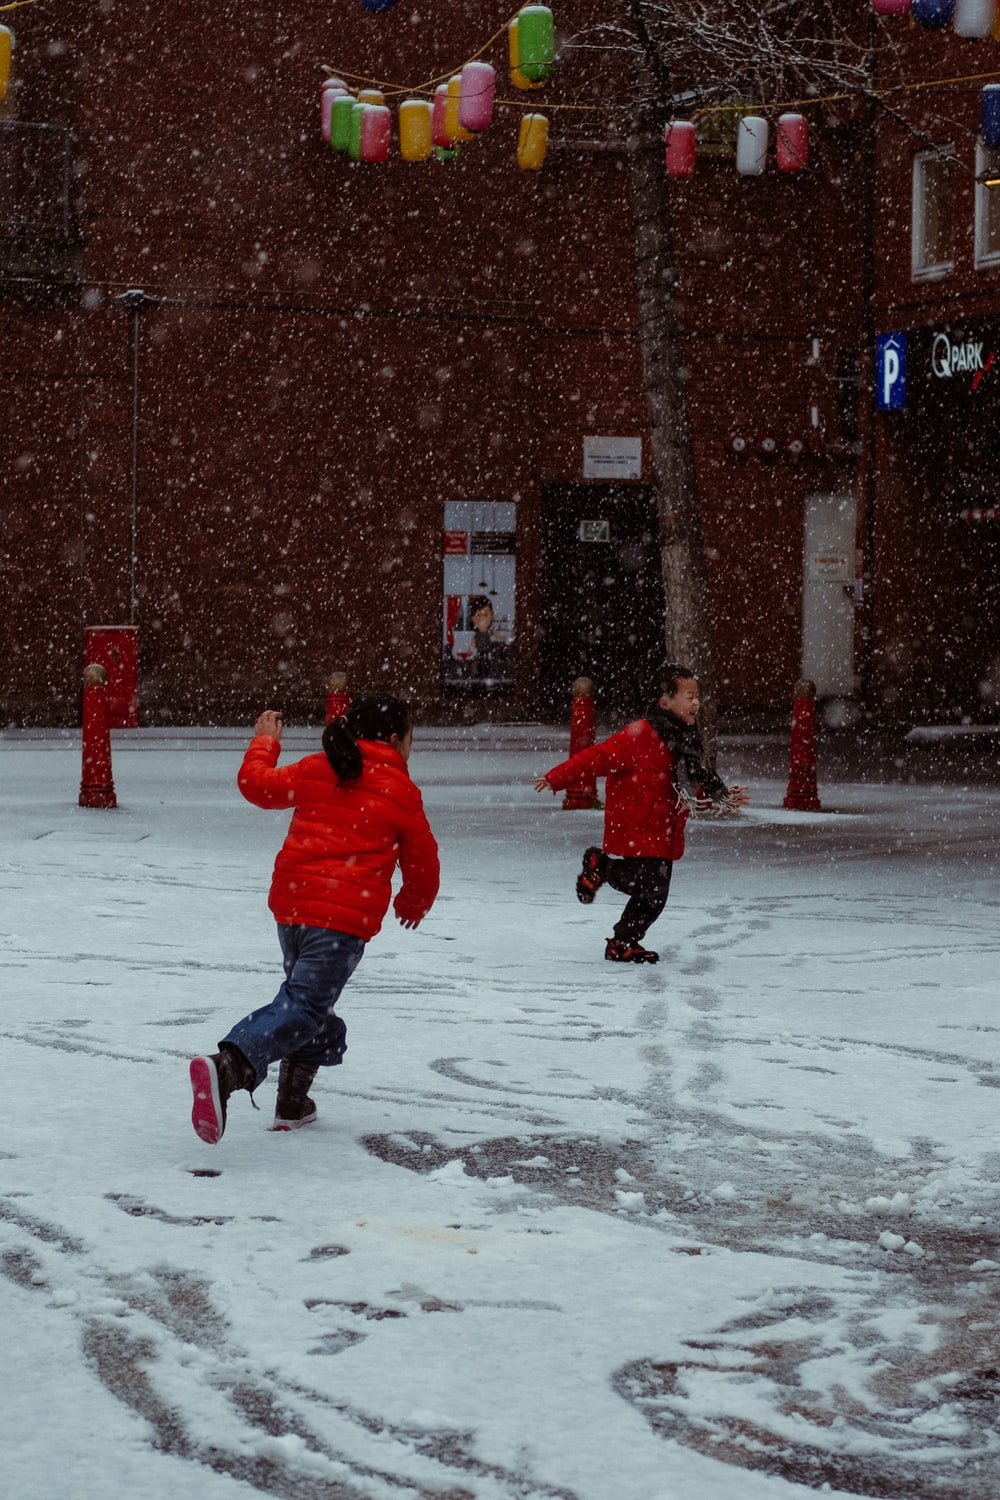 child in red jacket and blue pants walking on snow covered ground during daytime